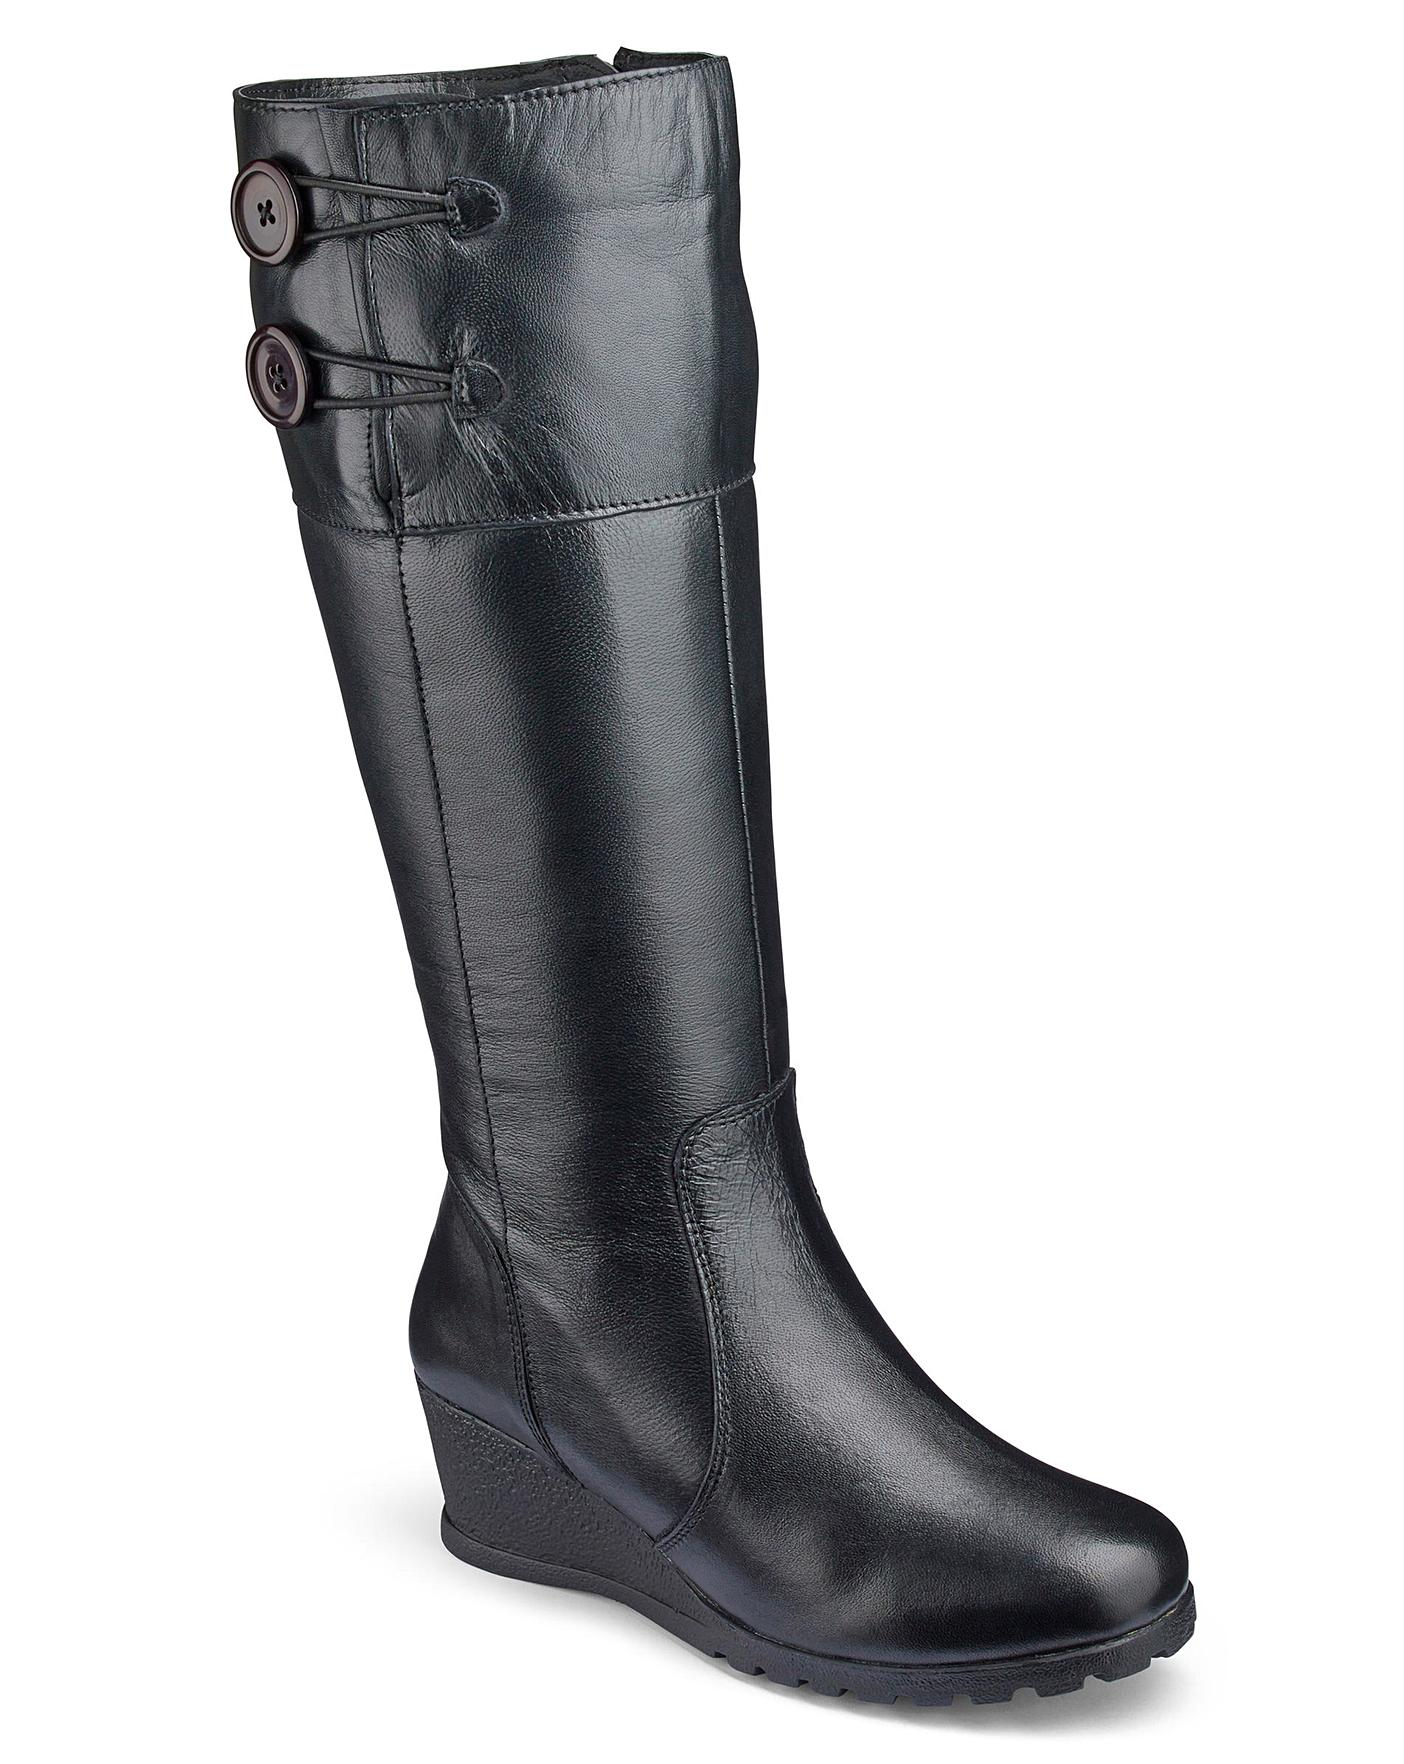 0aa5ef16169 Lotus High Leg Boots EEE Fit Standard